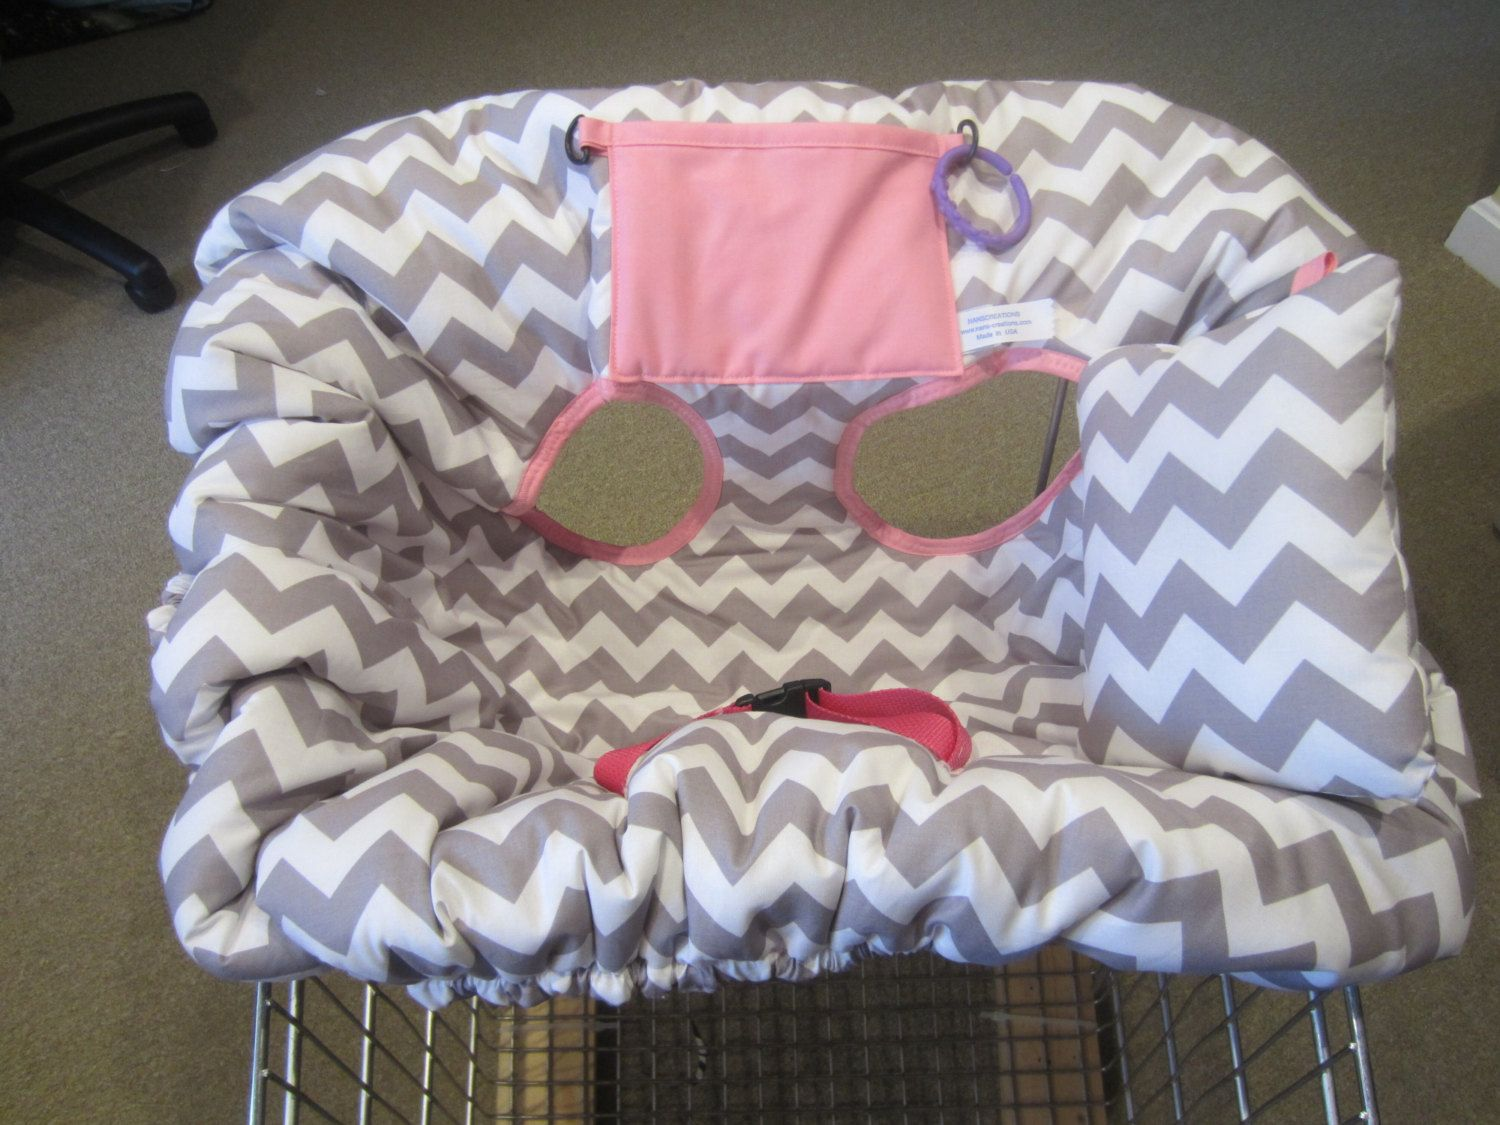 Gray Chevron Print With Med Pink Shopping Cart Cover And